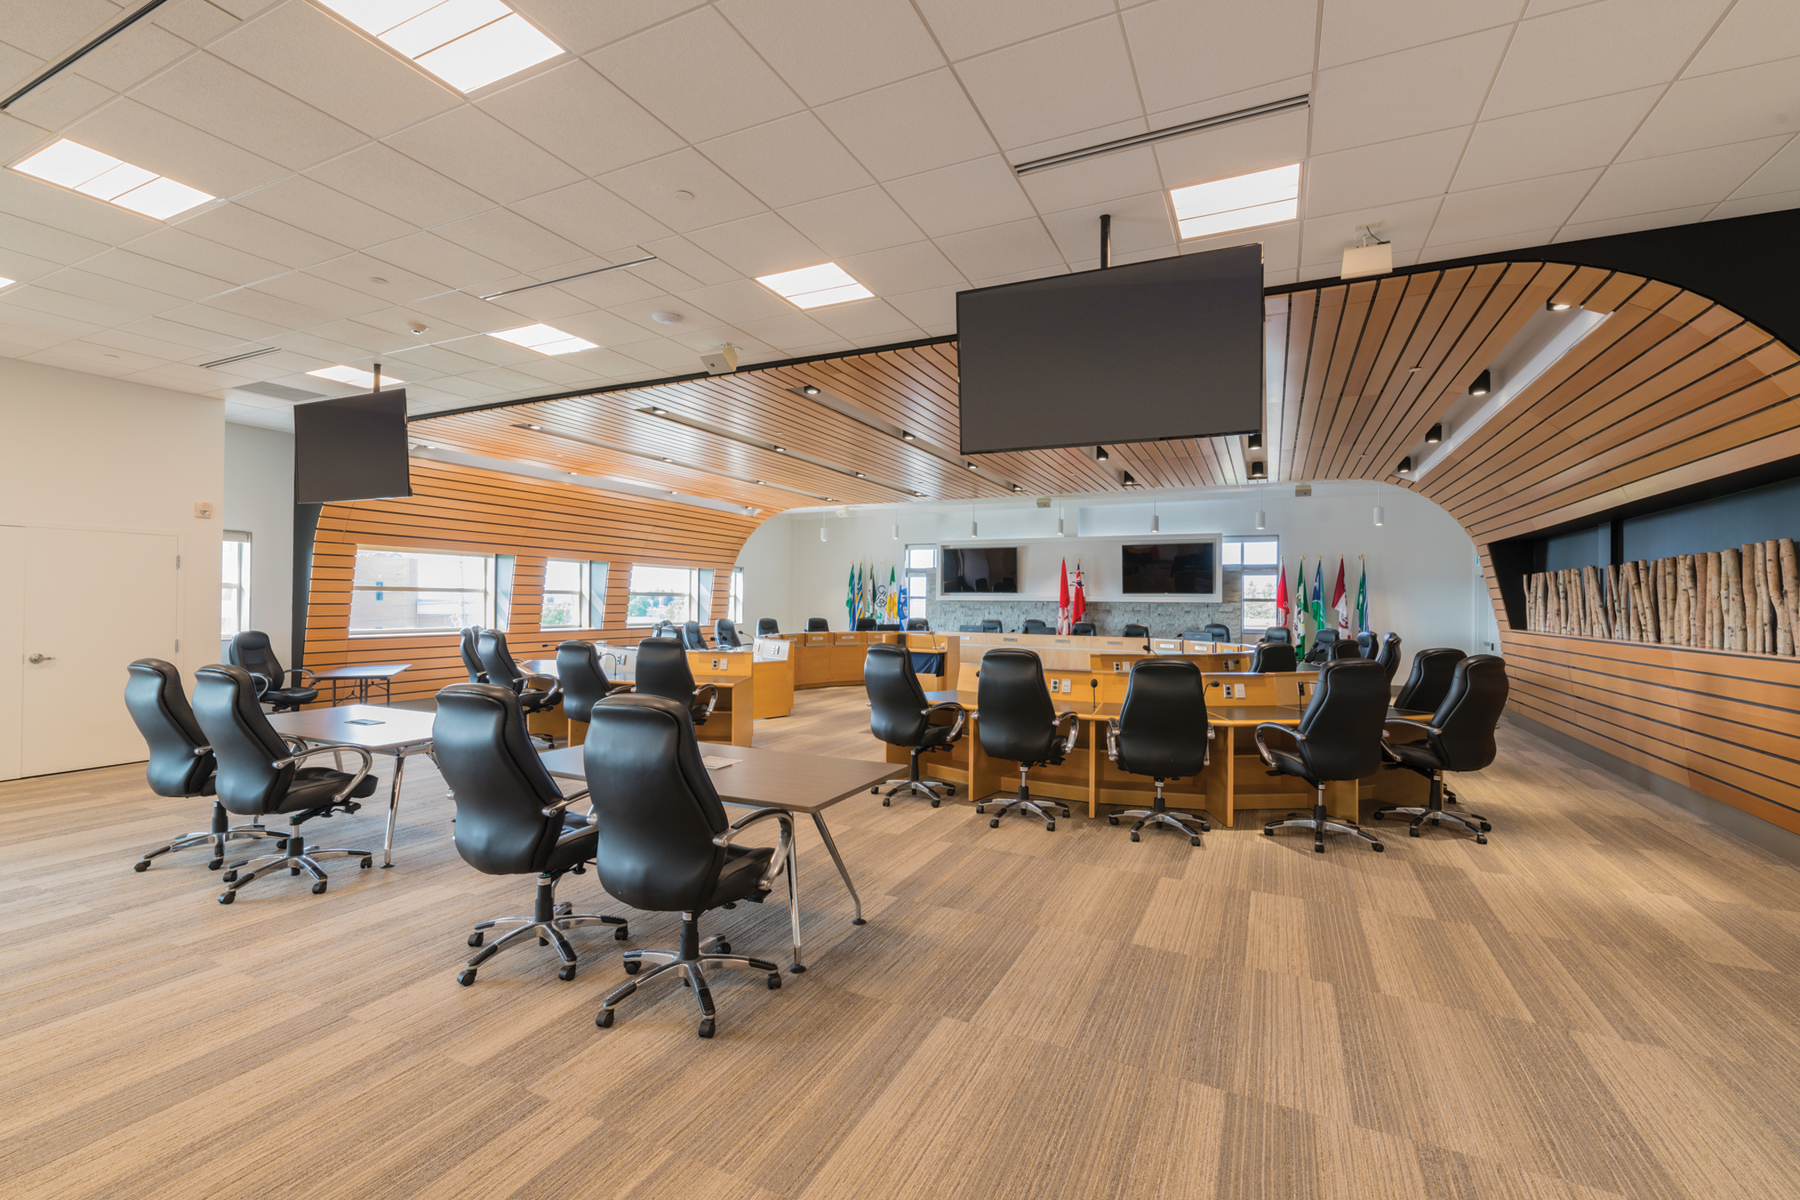 Council chamber with wood panel feature curving along walls and ceiling